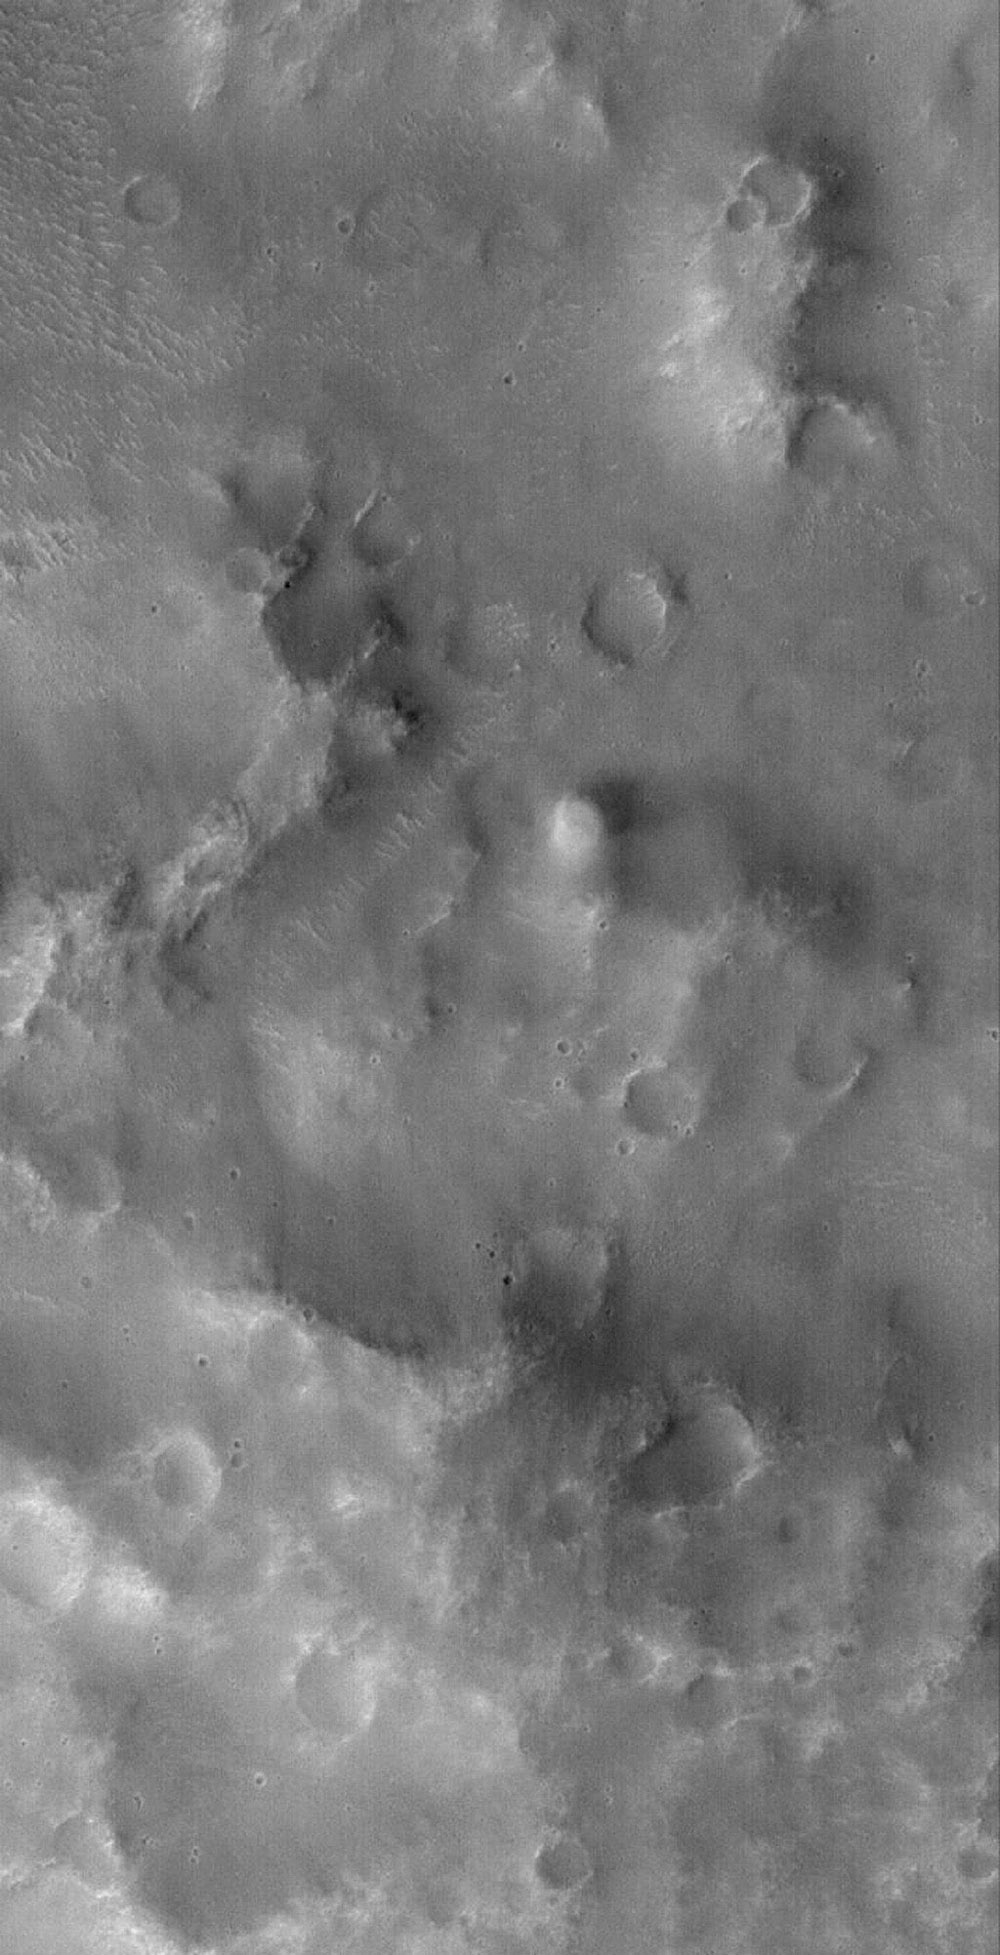 NASA's Mars Global Surveyor shows a fuzzy, nearly-circular bright, active dust devil making its way across the rugged terrain of the Loire Vallis system on Mars.